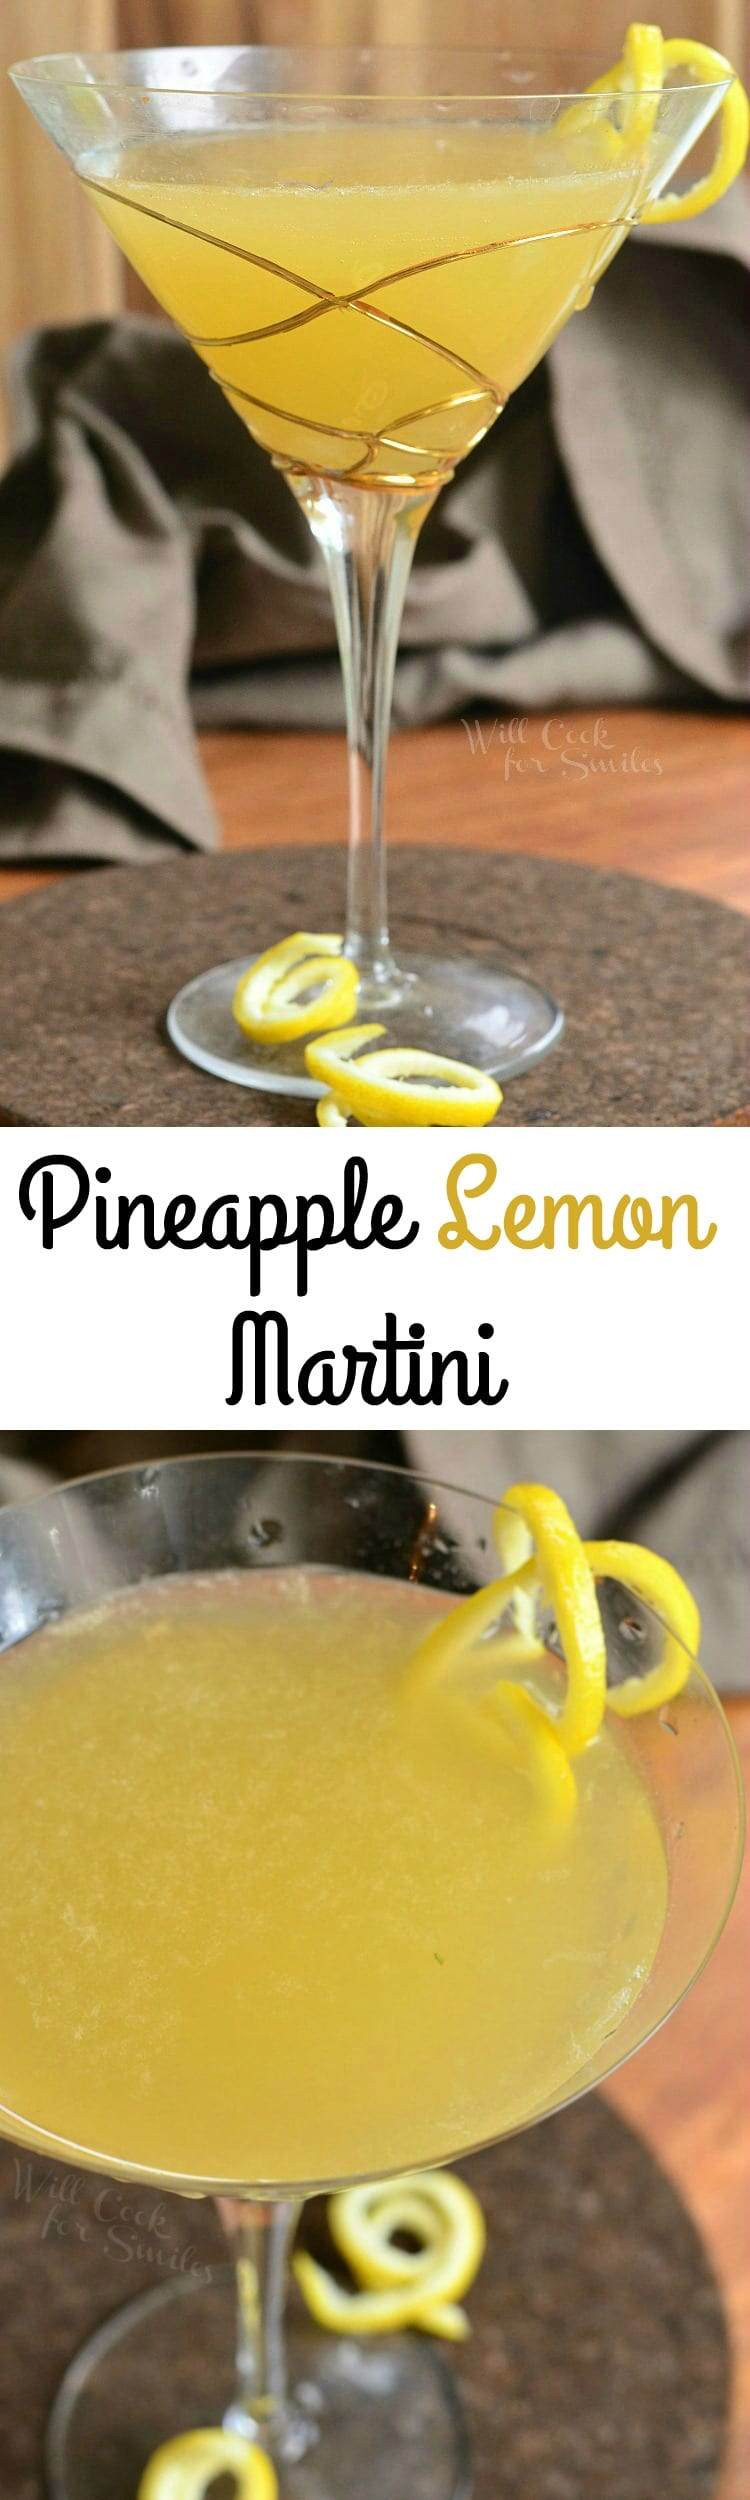 Pineapple Lemon Martini. BEAUTIFUL balance of sweet and sour flavors in a PERFECT summer cocktail. #drink